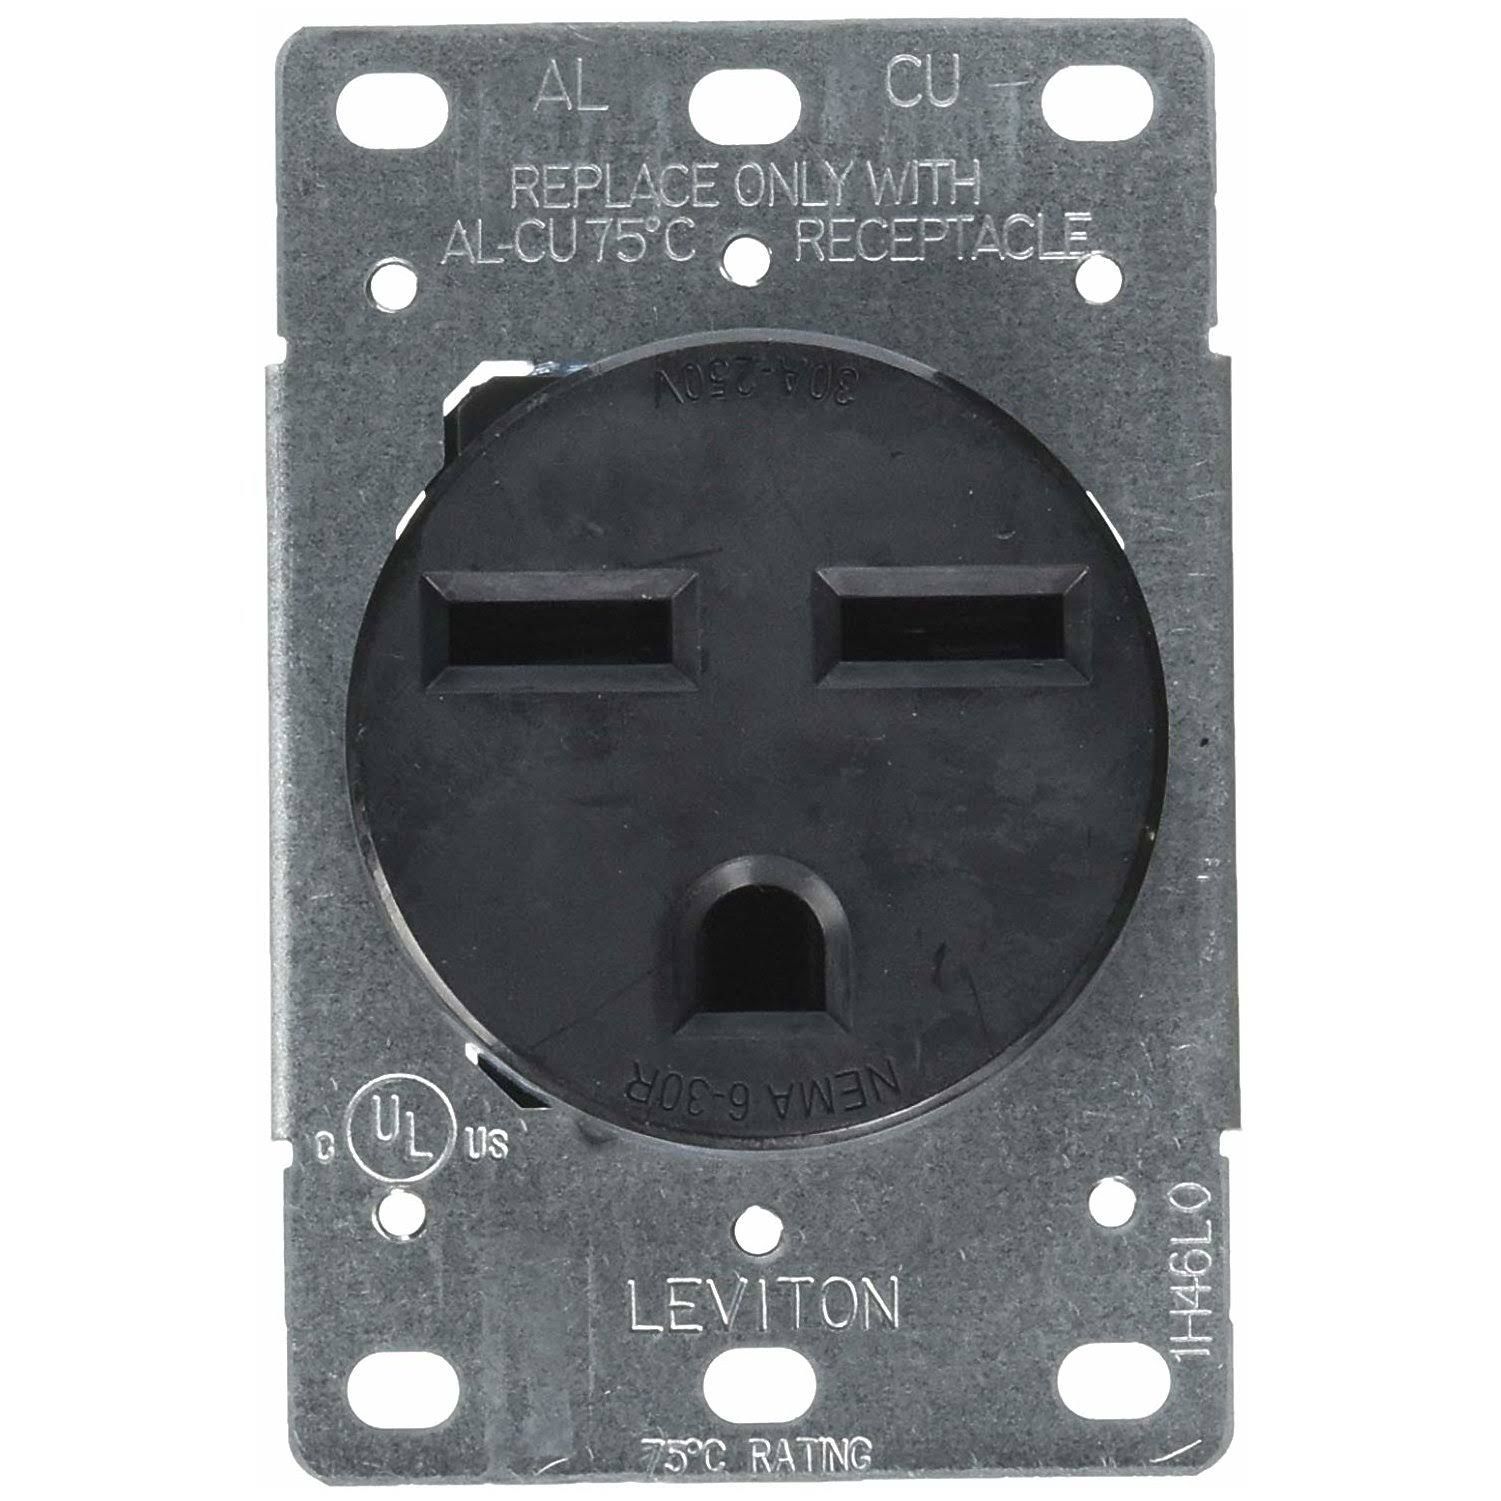 Leviton Flush Outlet R10-05372-S00